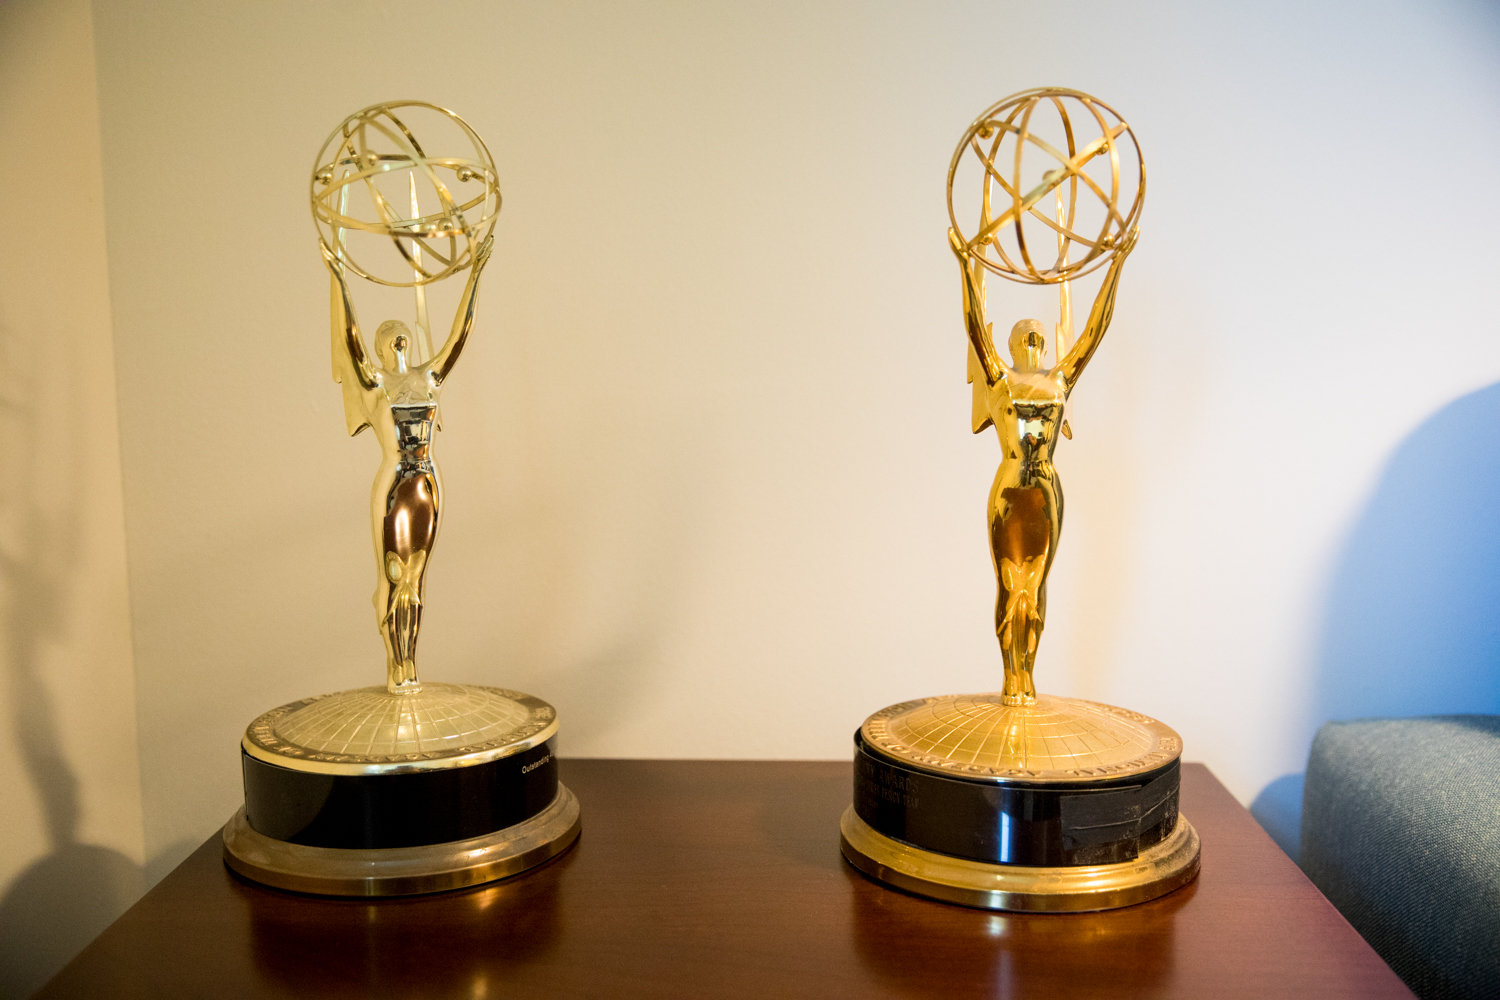 Two Emmy awards rest on Harry Miller's end table in his RiverWalk apartment. Miller won the awards during his long television career.